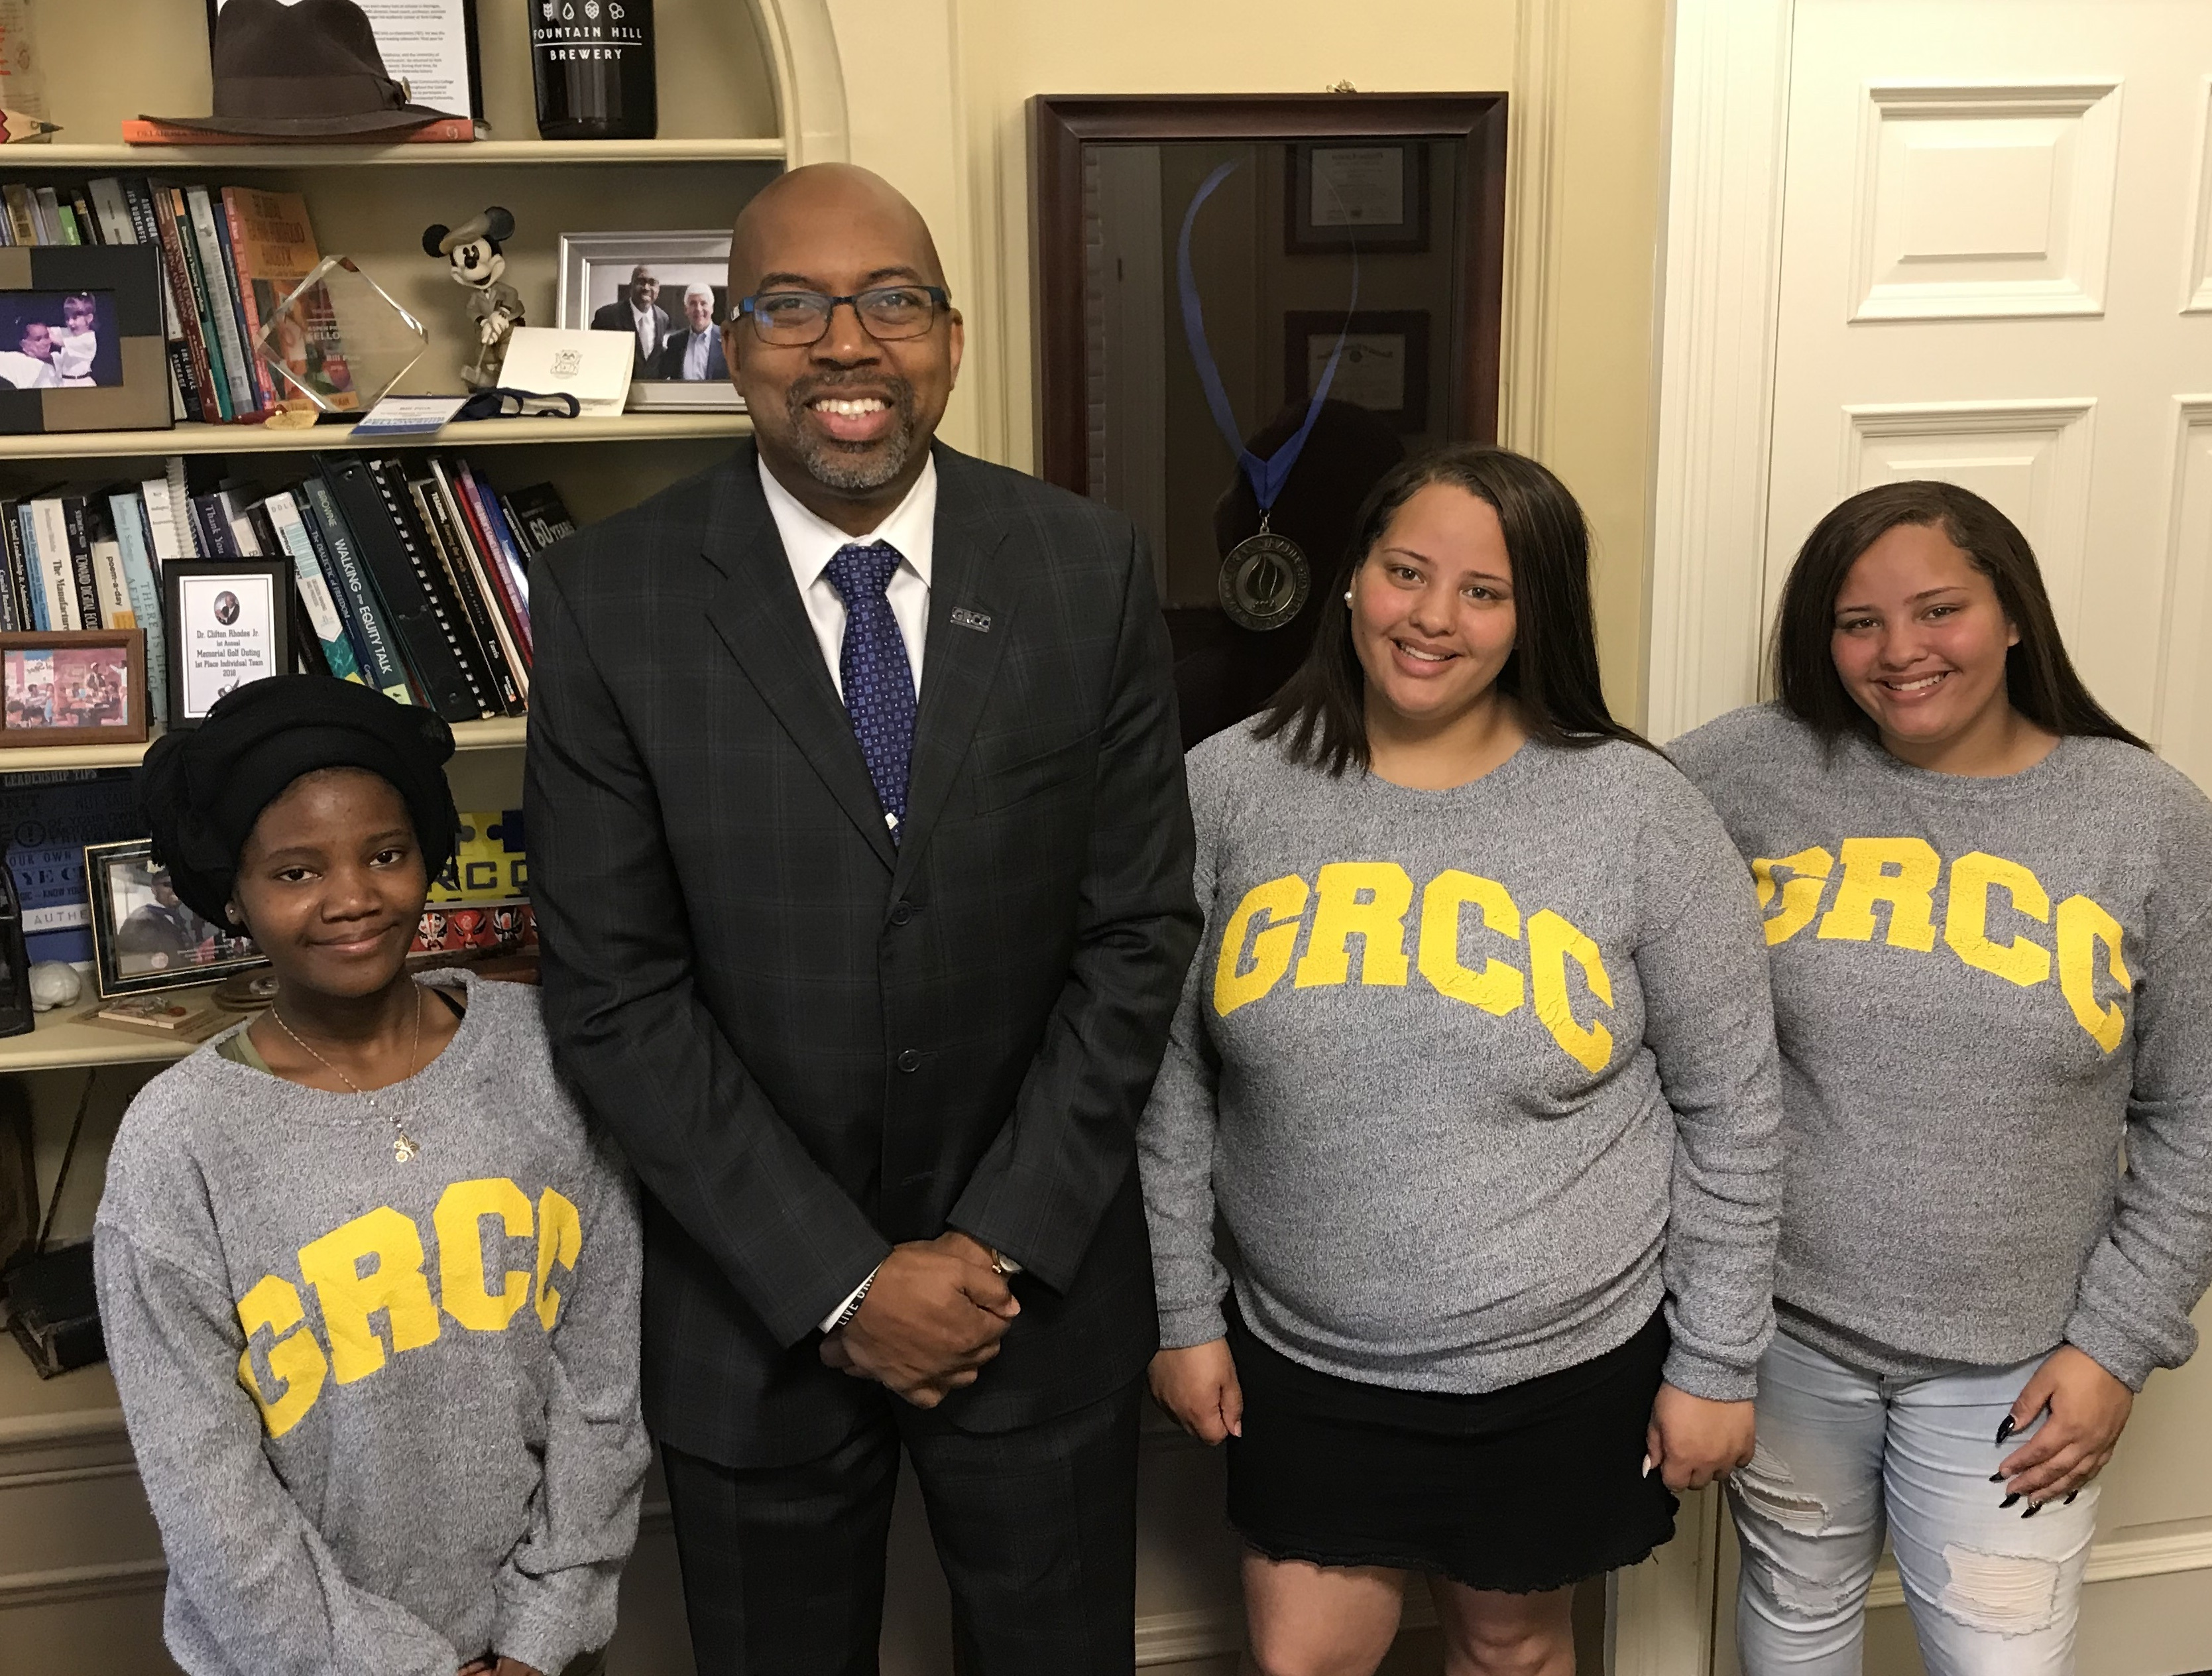 Innovation Central High School valedictorian Shamsho Abdi, Ottawa Hill High valedictorian Syena Moore and her twin sister, salutatorian Taina Moore, wearing GRCC sweaters and posing with GRCC President Bill Pink.